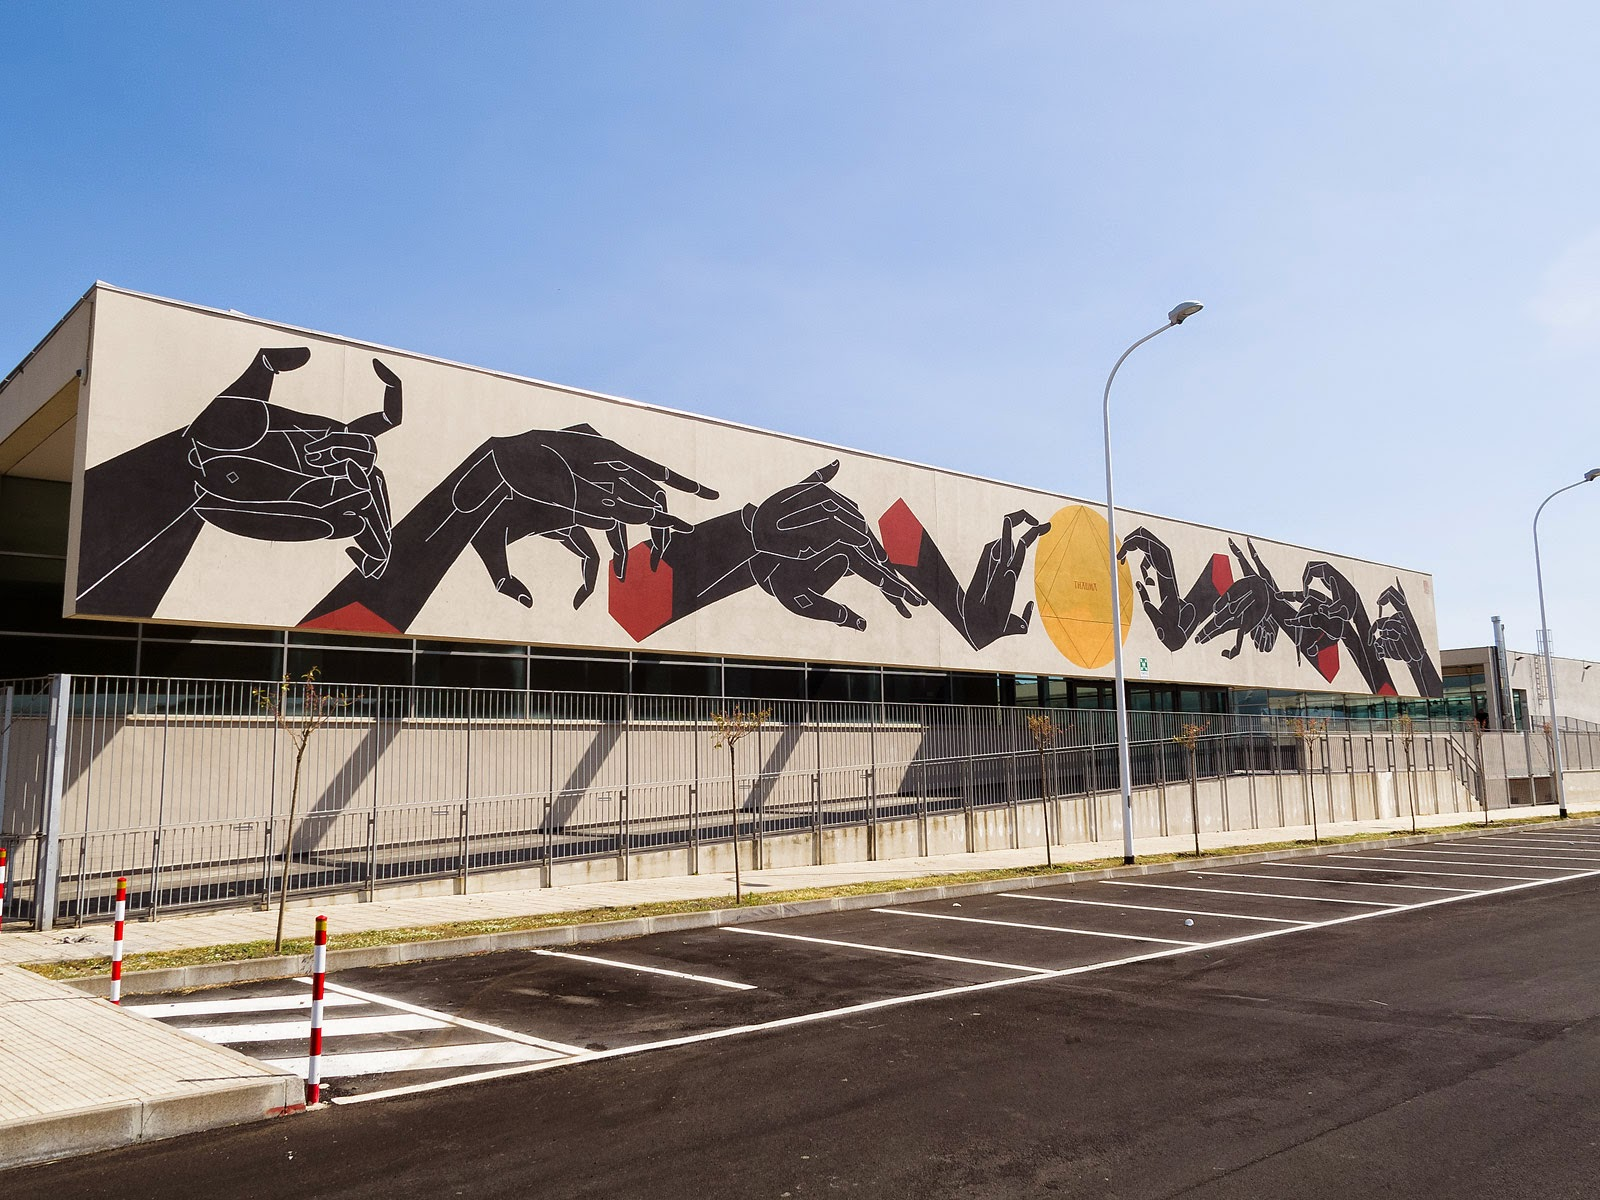 Our friend Basik just sent us a series of images after he spent month in Sicily for an artist residency organized by the I ART program. The Italian artist was  located in the town of Misterbianco, very close to mount Etna, where he managed to create a mural on the local auditorium.